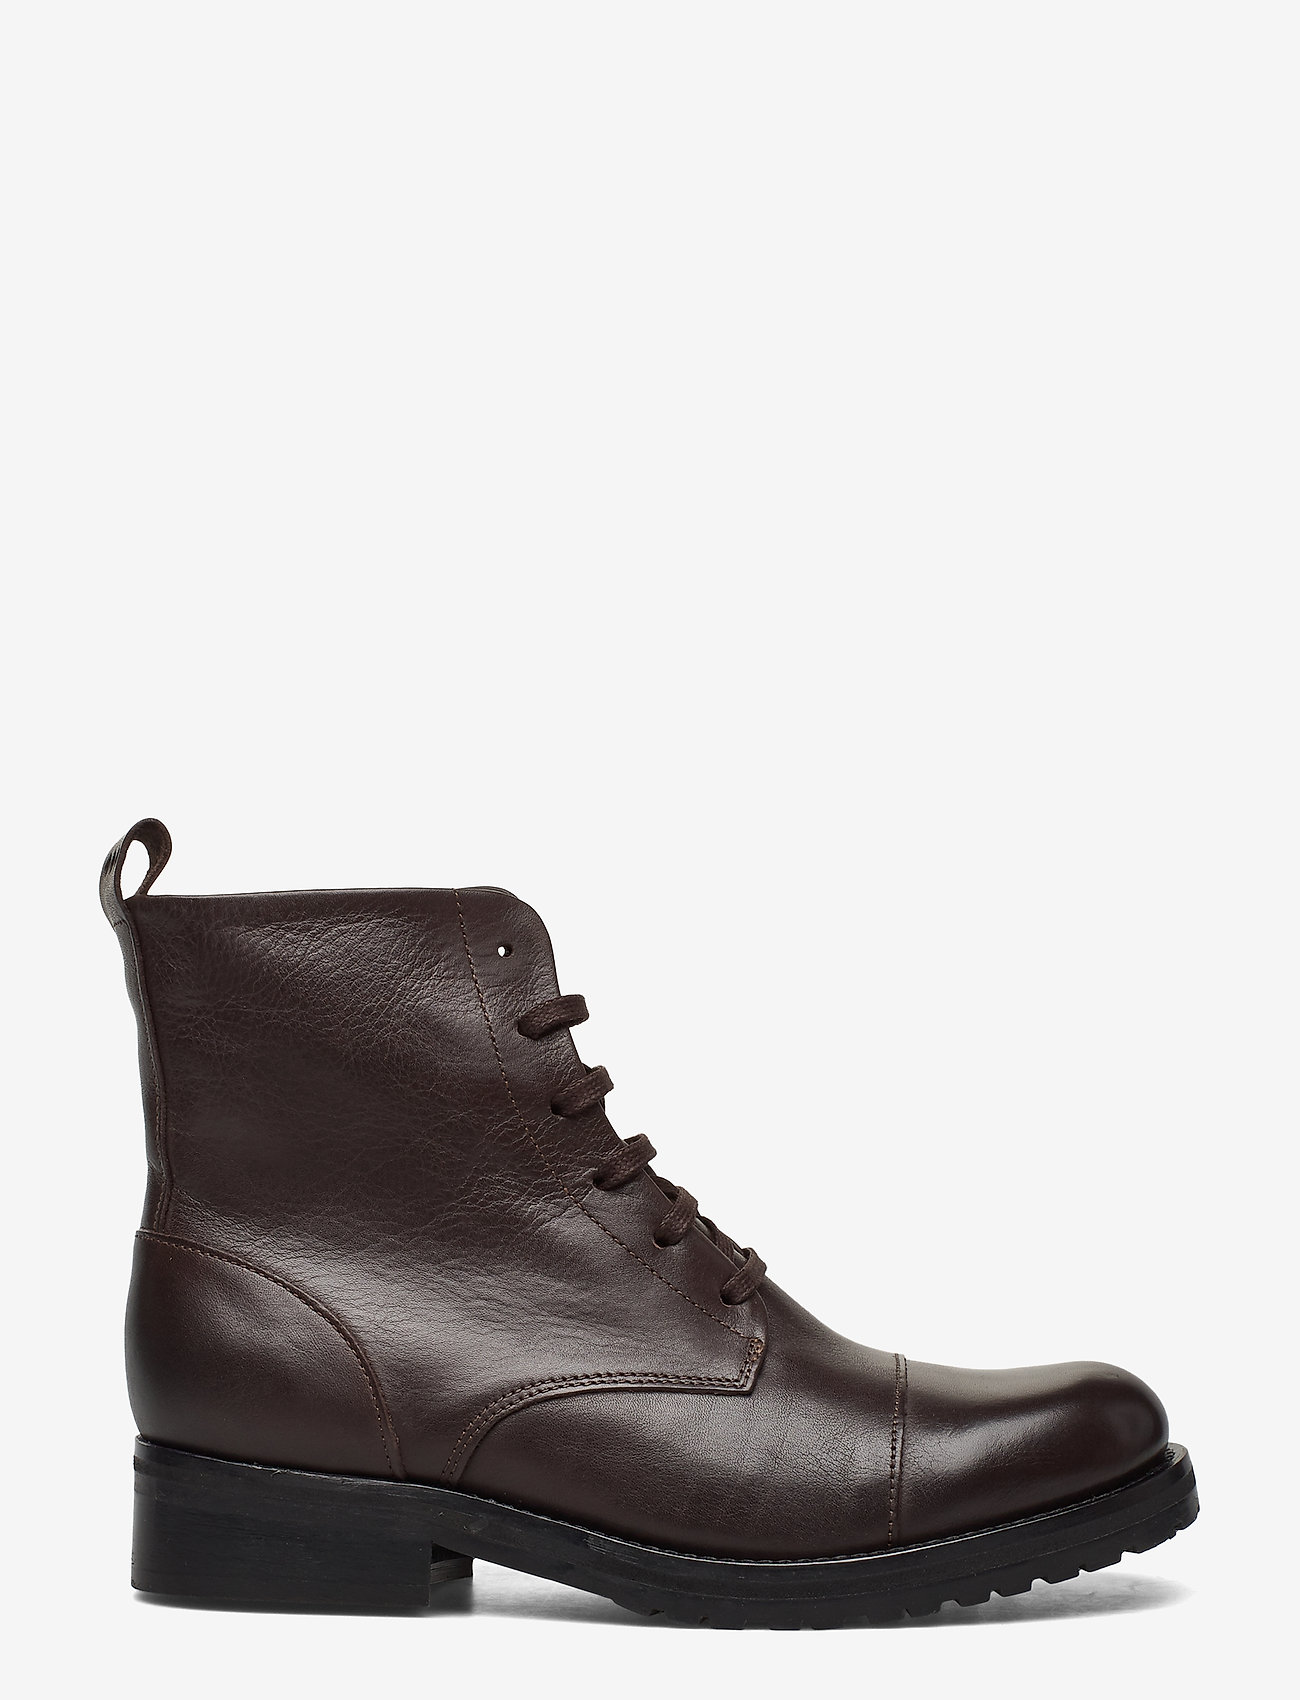 Royal RepubliQ - Ave Lace Up Boot - Black - niski obcas - brown - 1